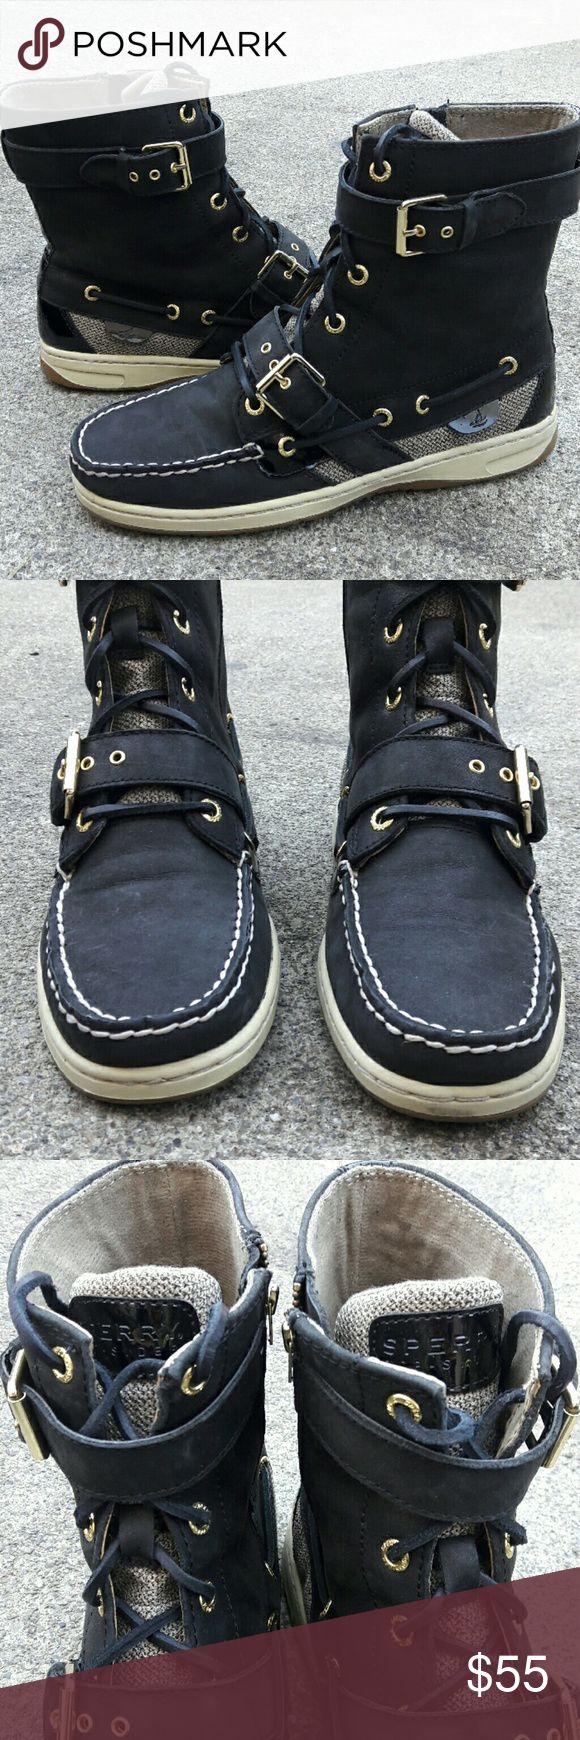 ☄🌟🎉🎉HOST PICK!!!🎉🎉🌟❤☄Sperry top-sider boots In great condition wore only a few times inside office.  Checkout my listings for more awesome stuff! ? Sperry Top-Sider Shoes Ankle Boots & Booties